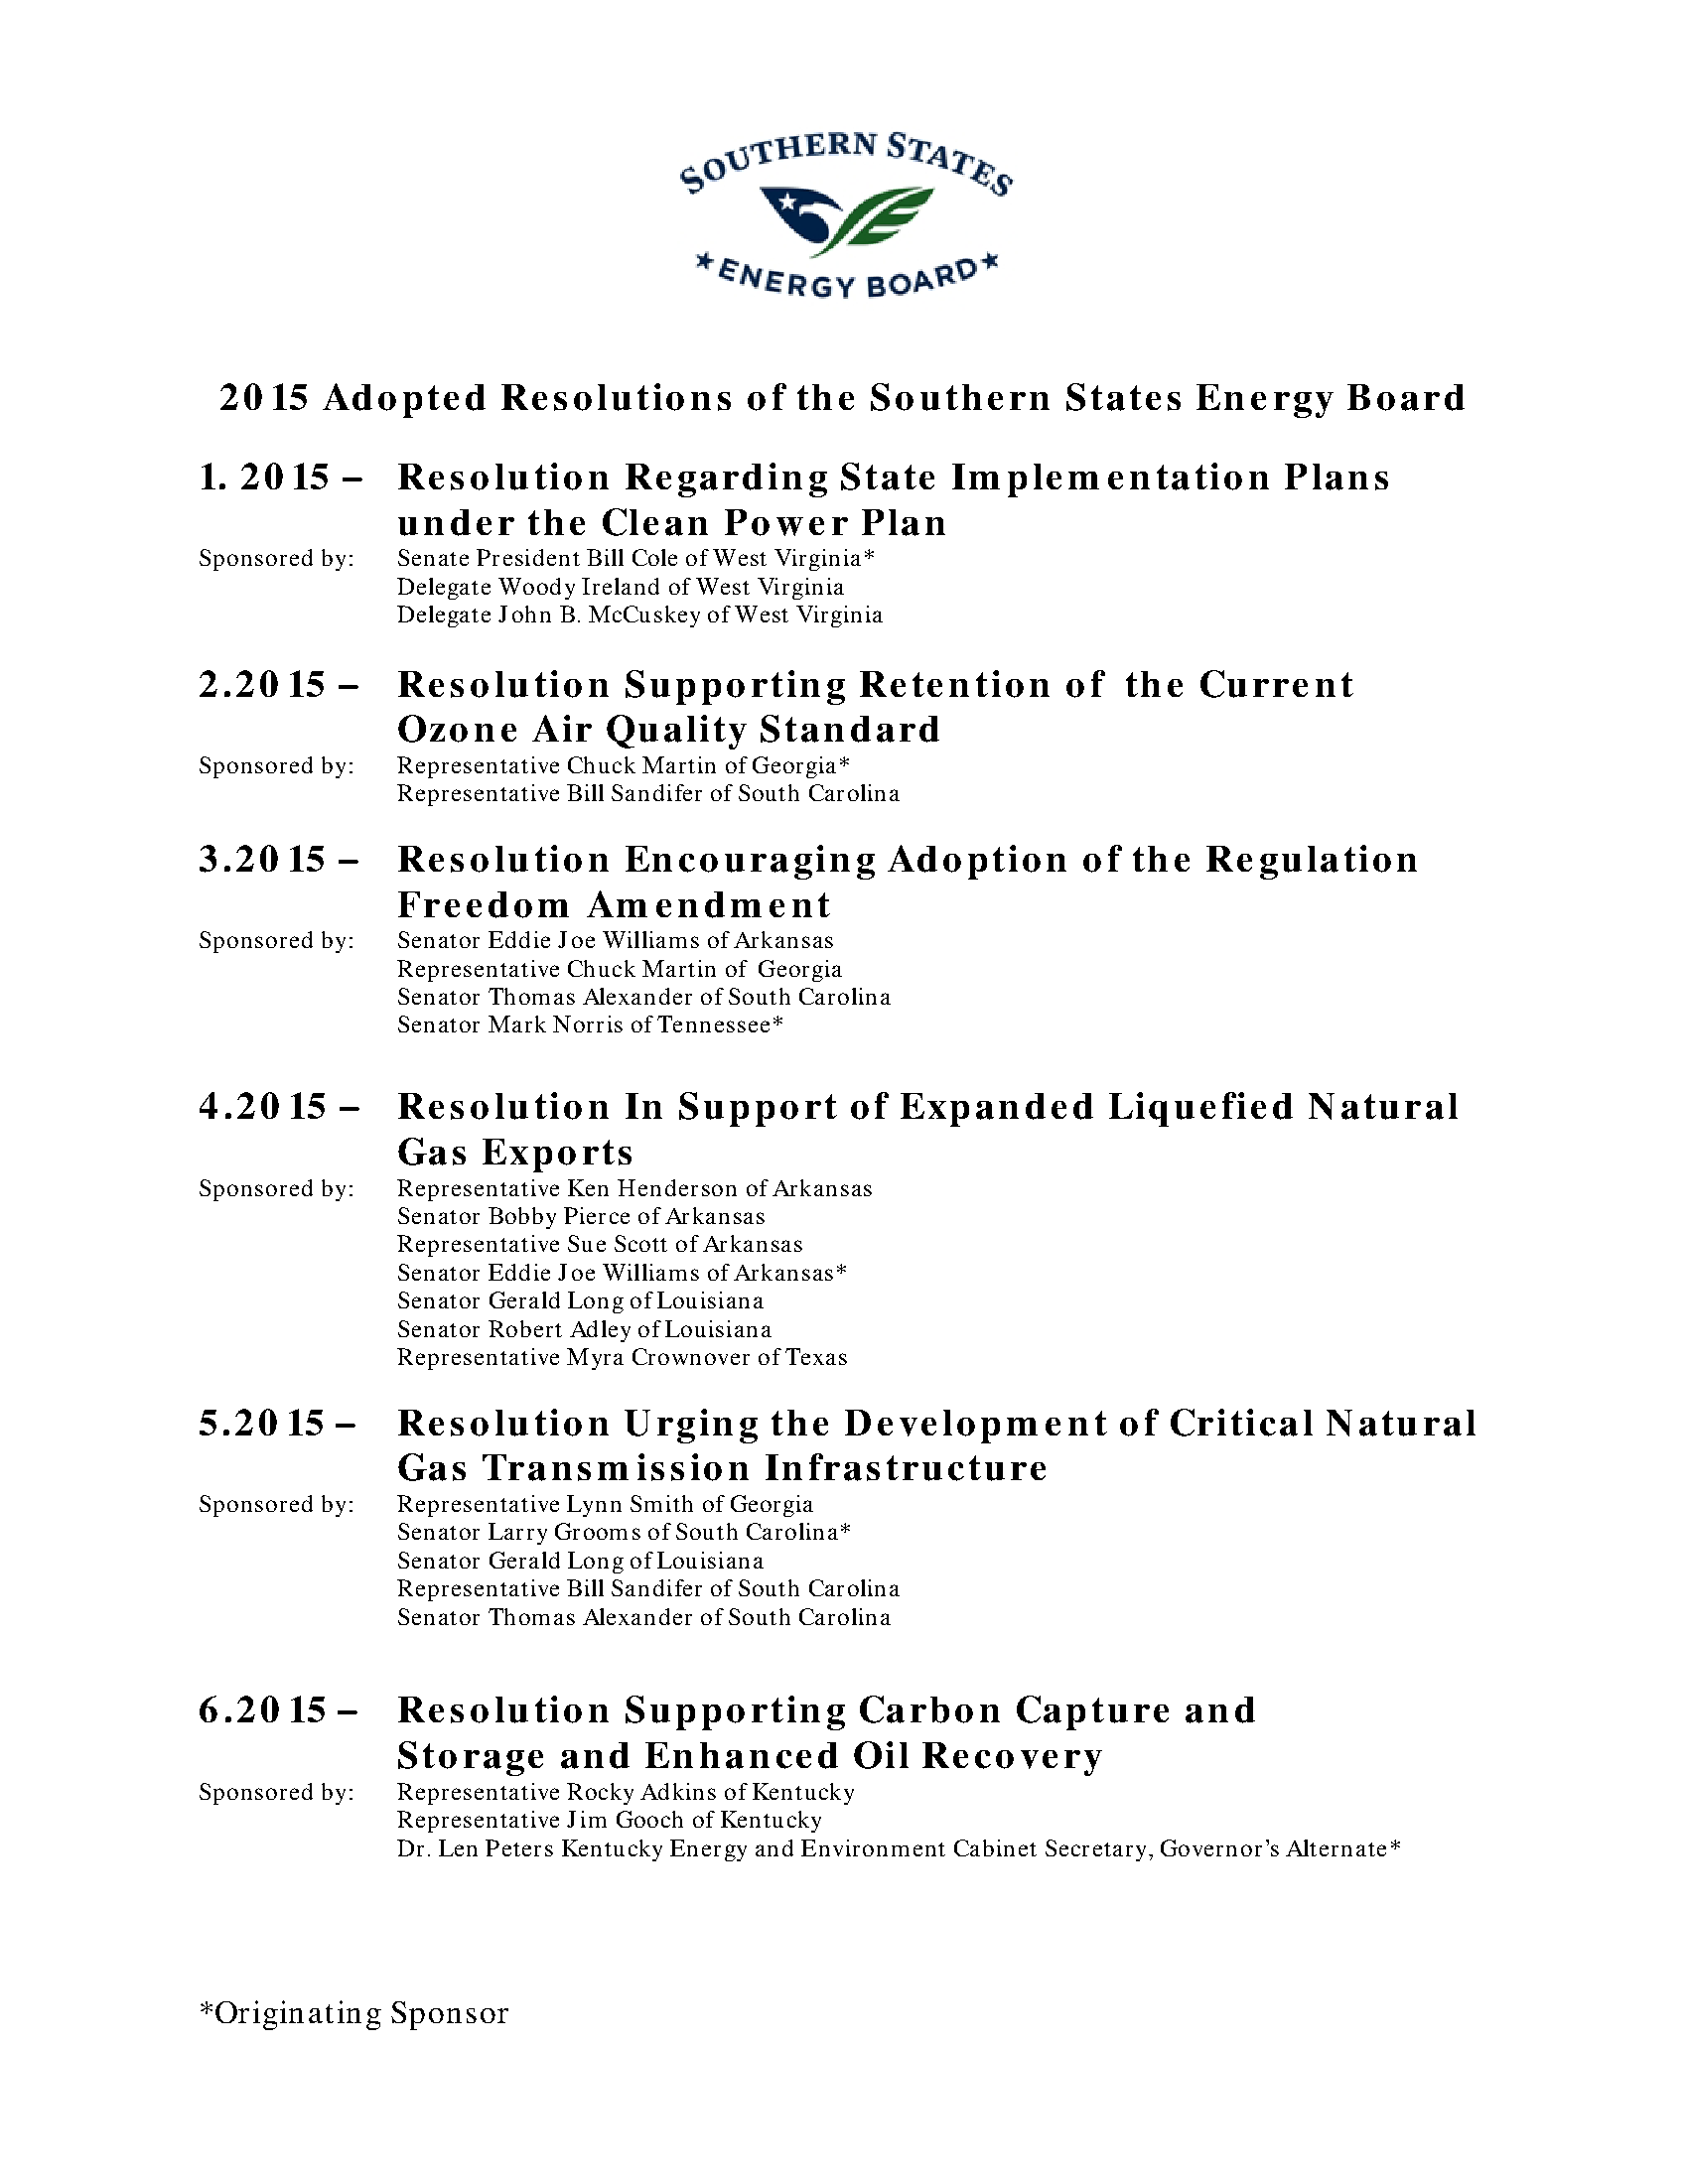 Southern States Energy Board - Adopted Resolutions (2015